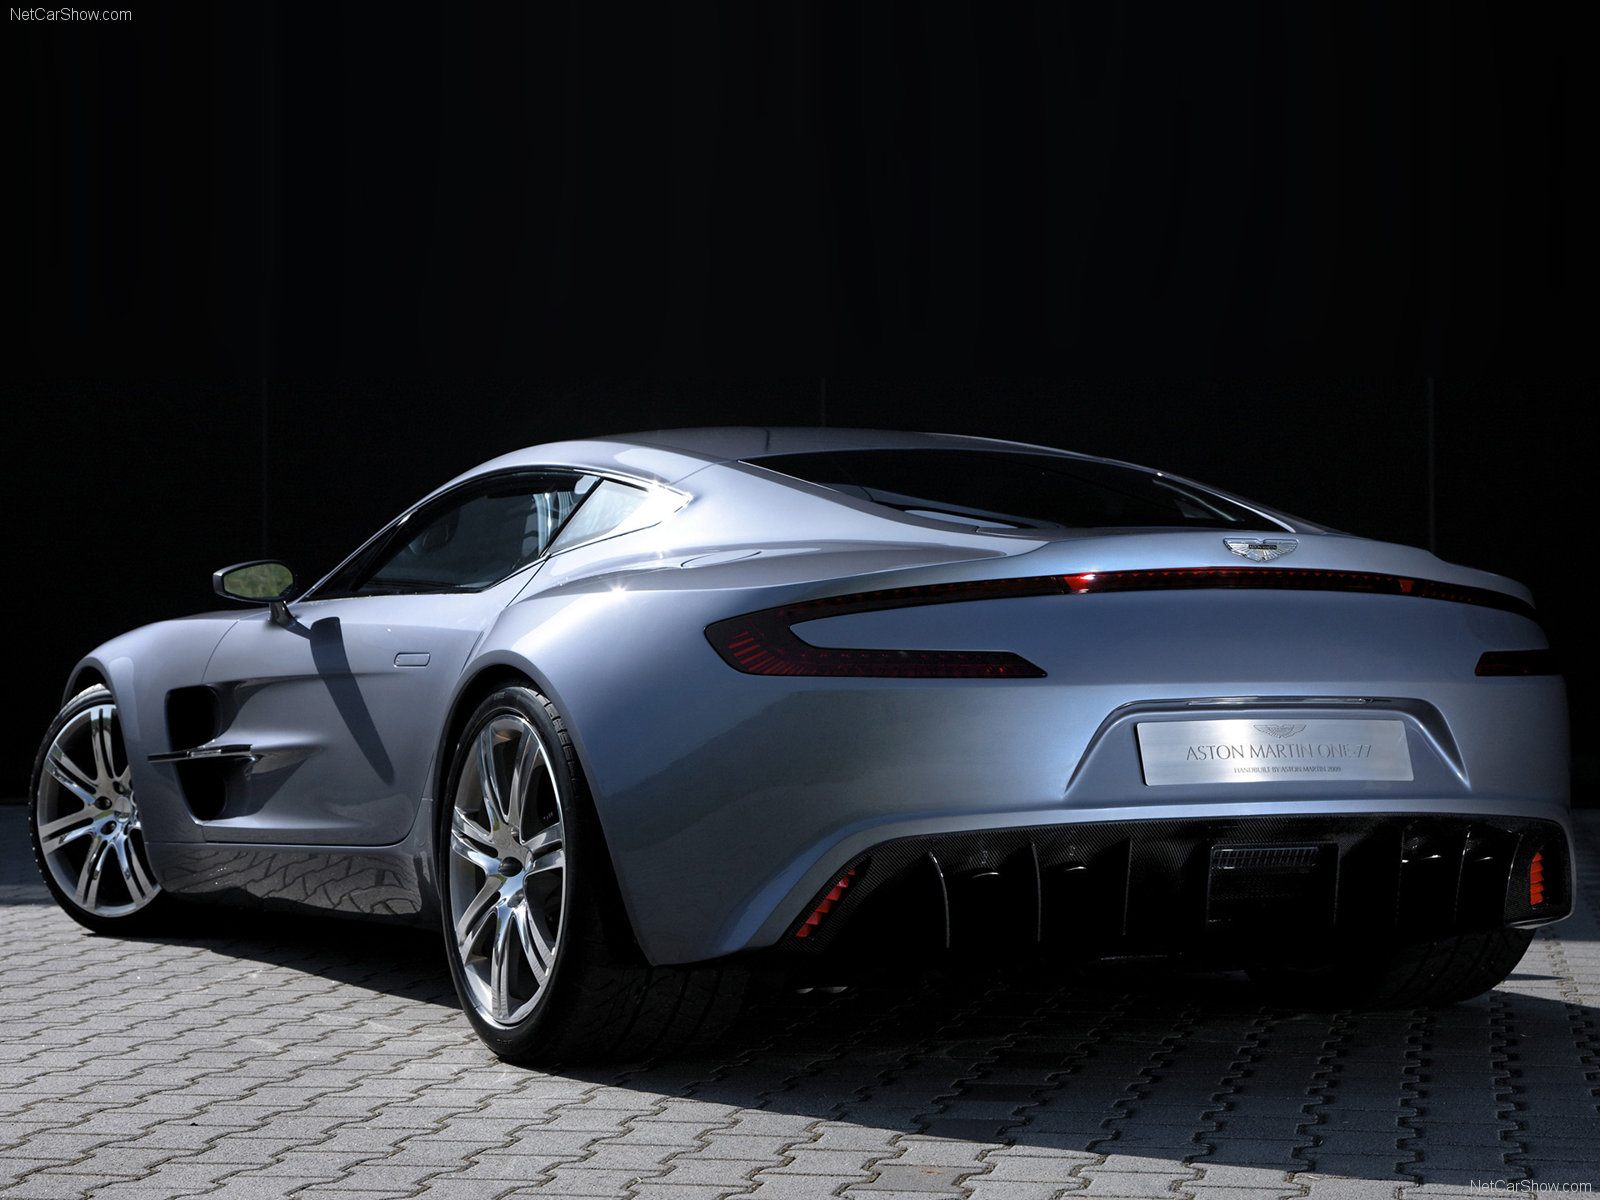 Aston Martin One77 Wallpapers  Car Wallpapers